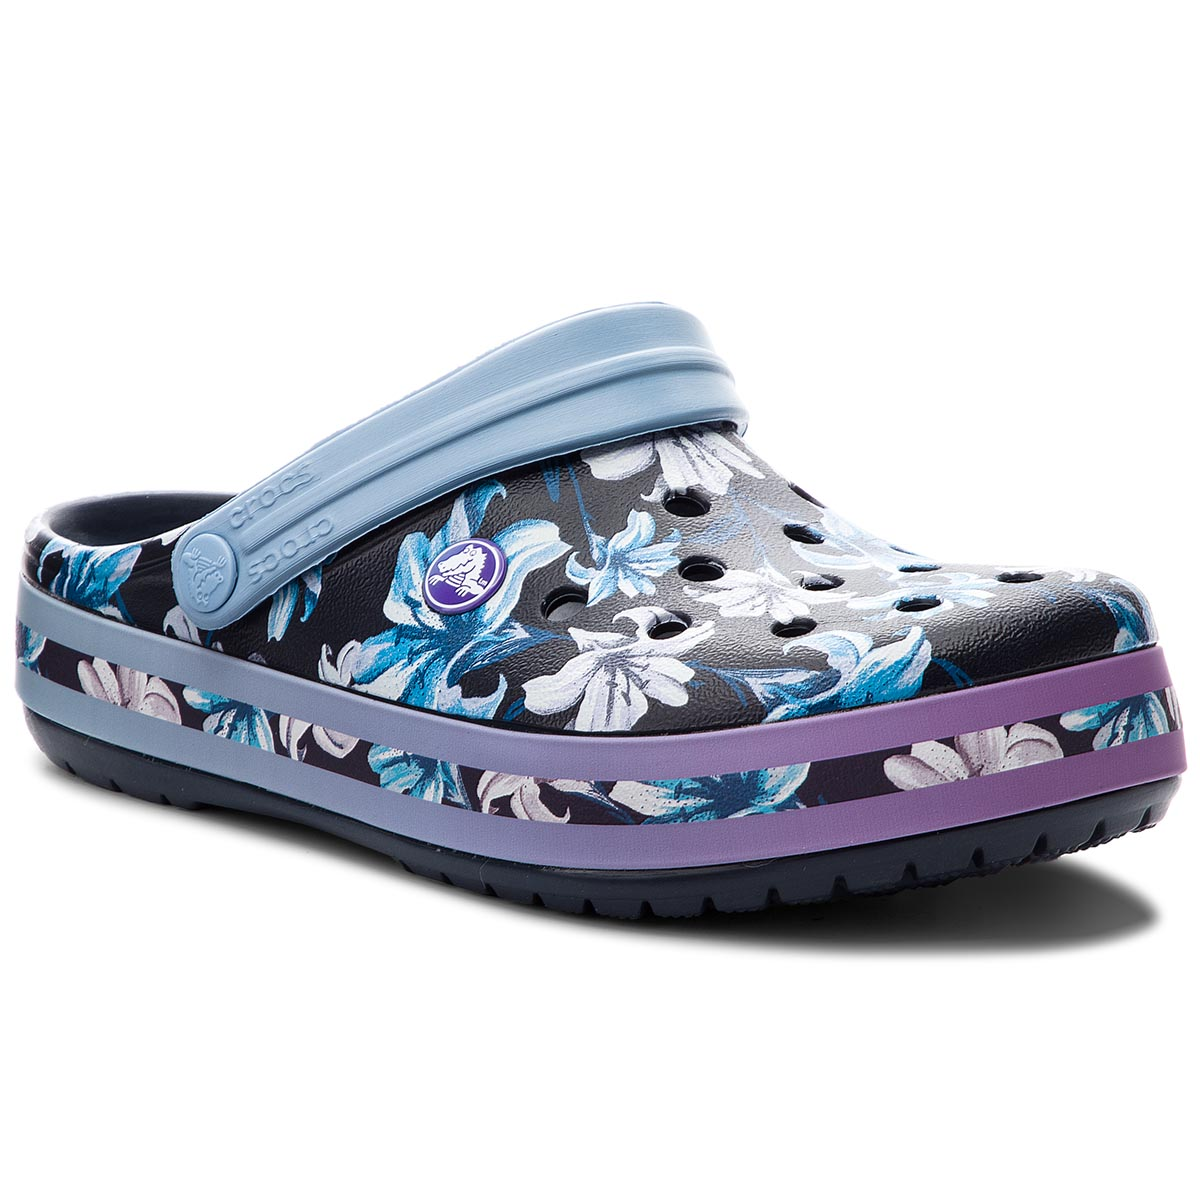 Klapki CROCS - Crocband Graphic III Clog 205330 Tropical Floral/Navy